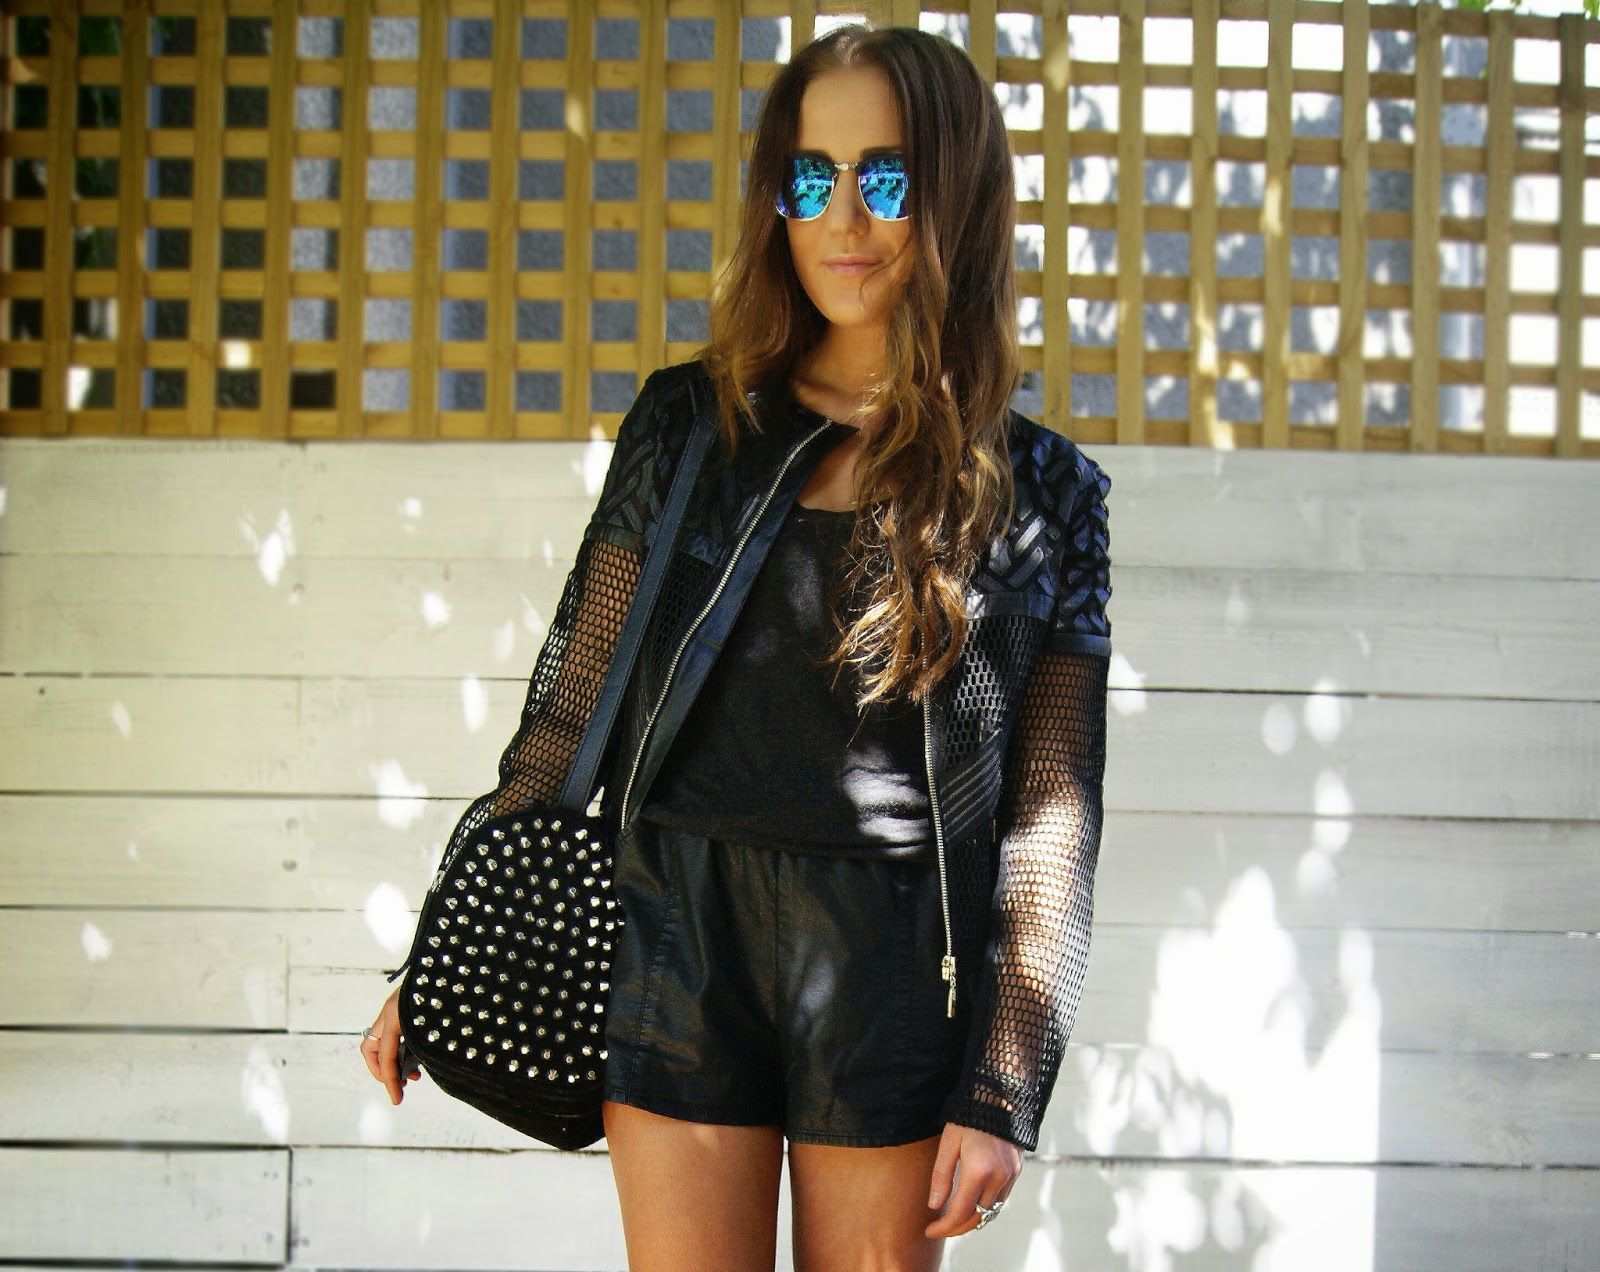 c19fc9bea908f Bag- Zara. Shorts- Urban Outfitters. Sunglasses- Urban Outfitters. Boots-  ASOS